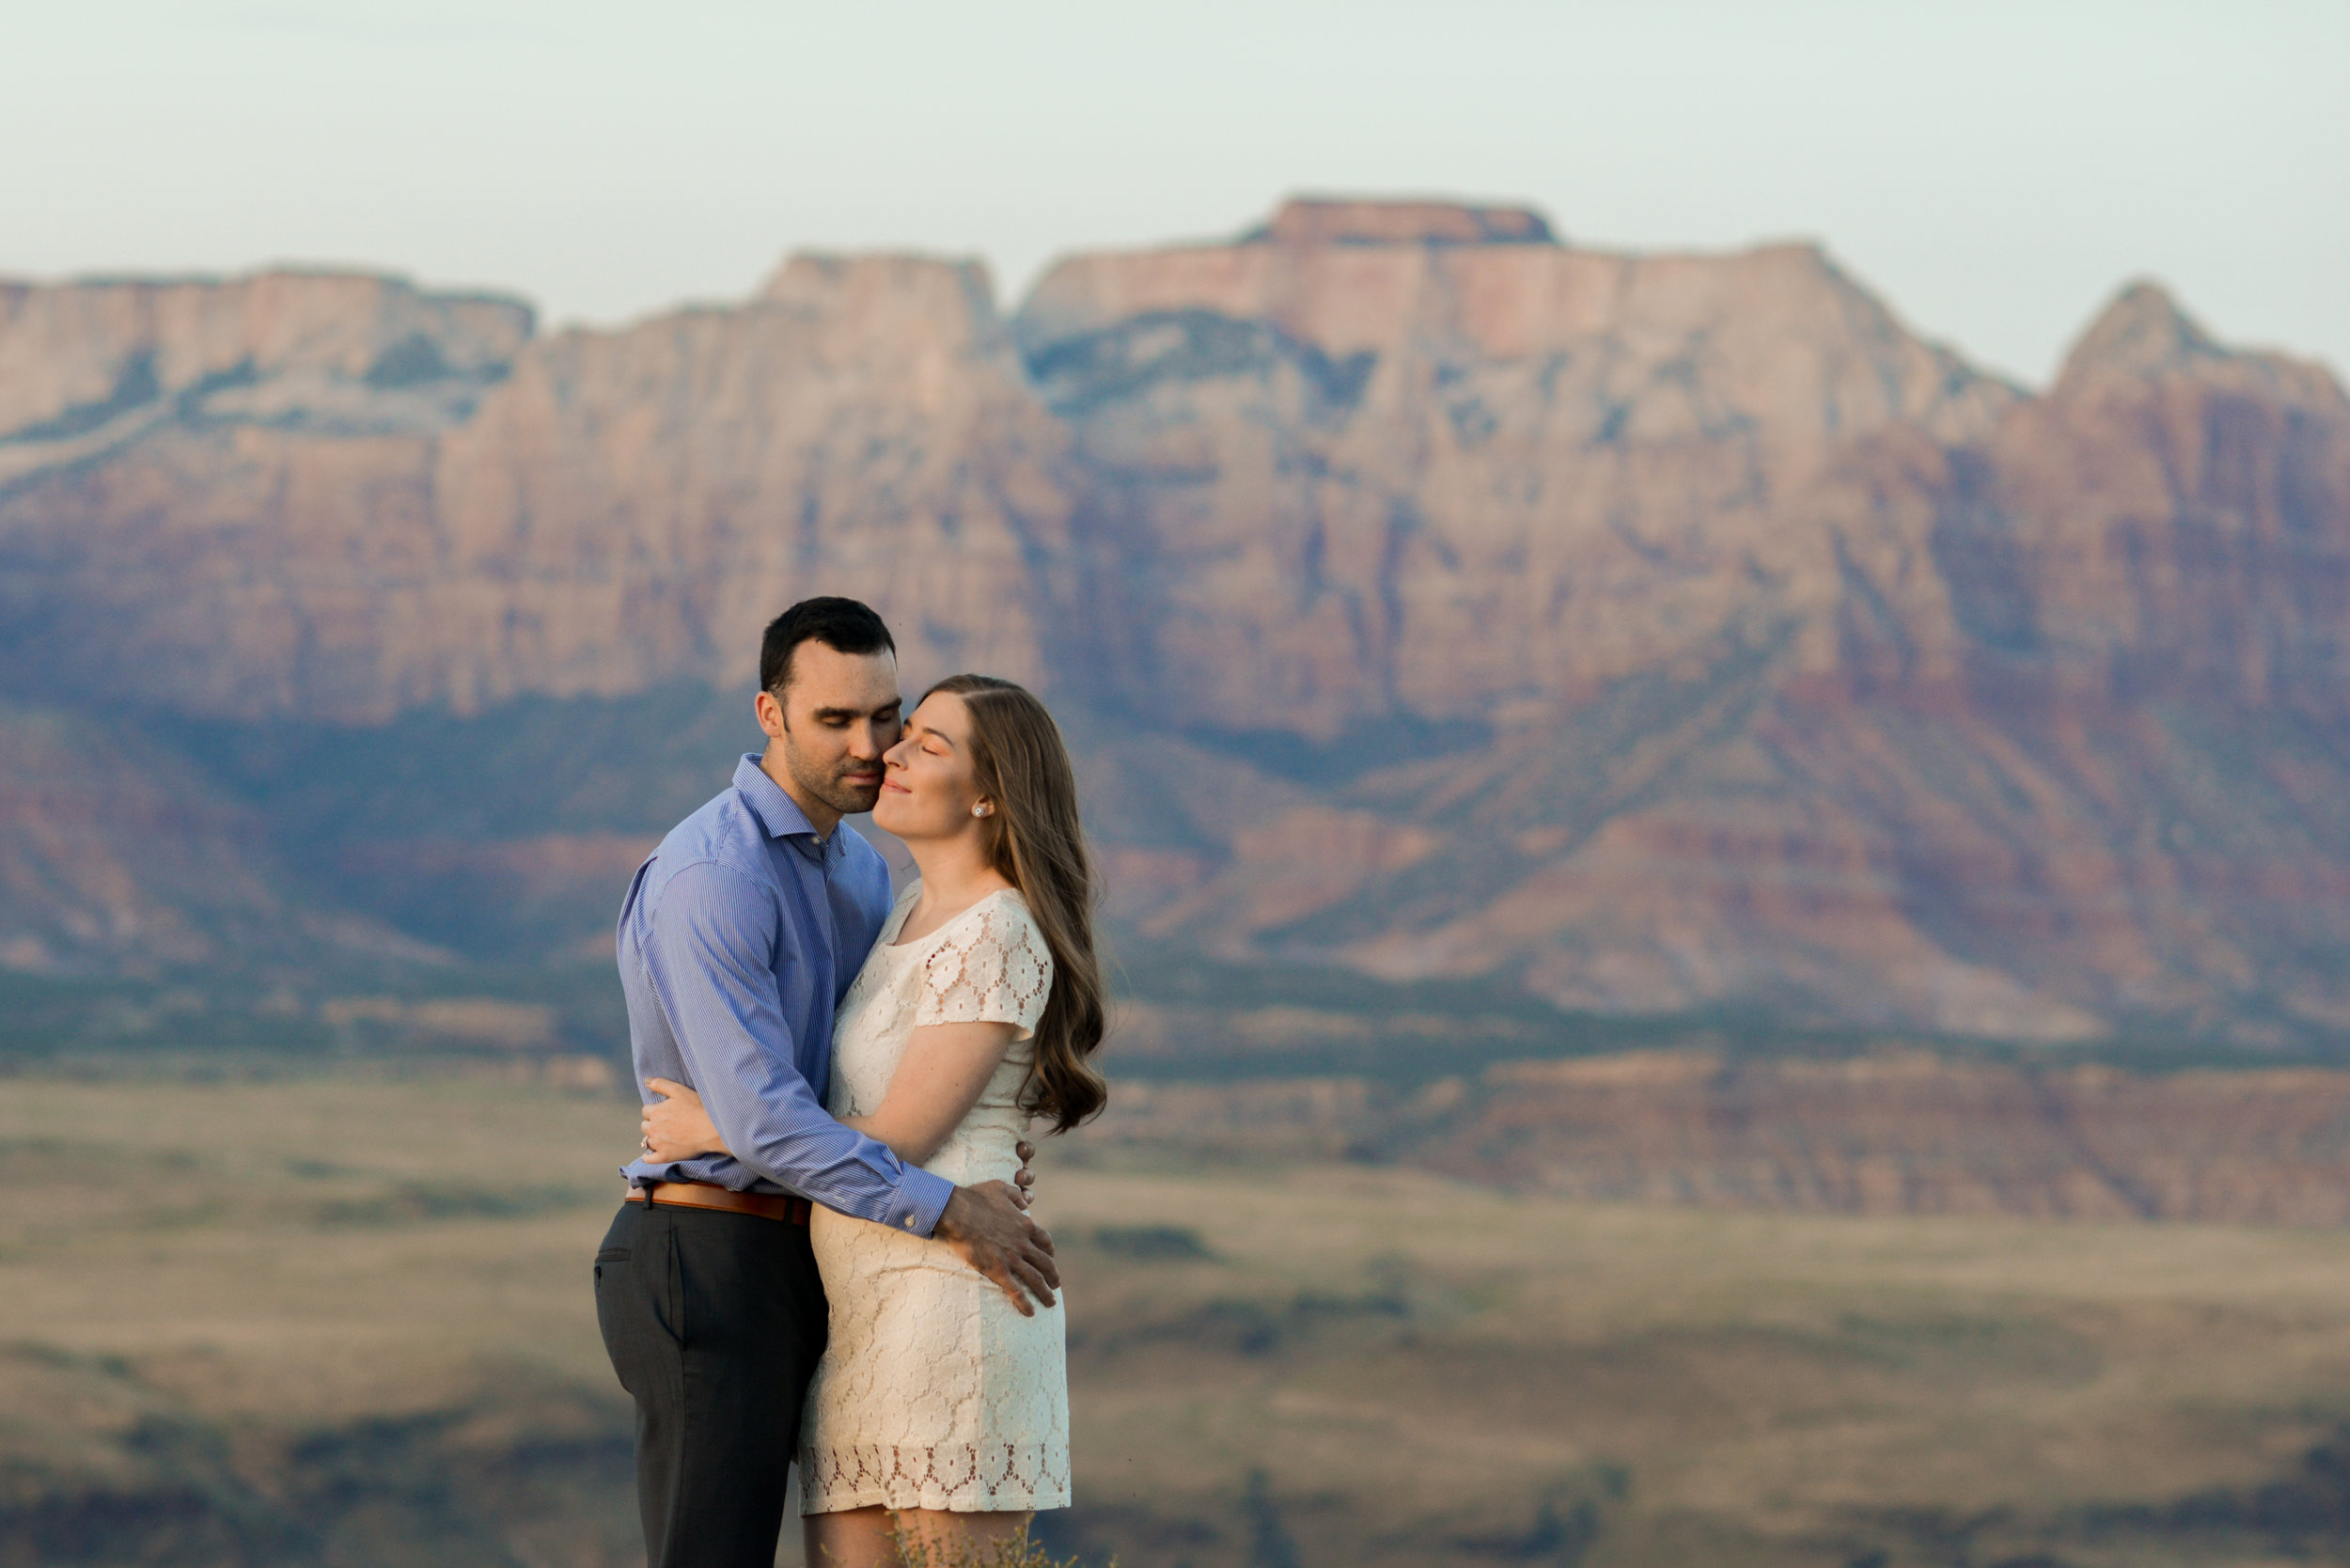 zionnationalparkengagementphotos (71 of 53).jpg